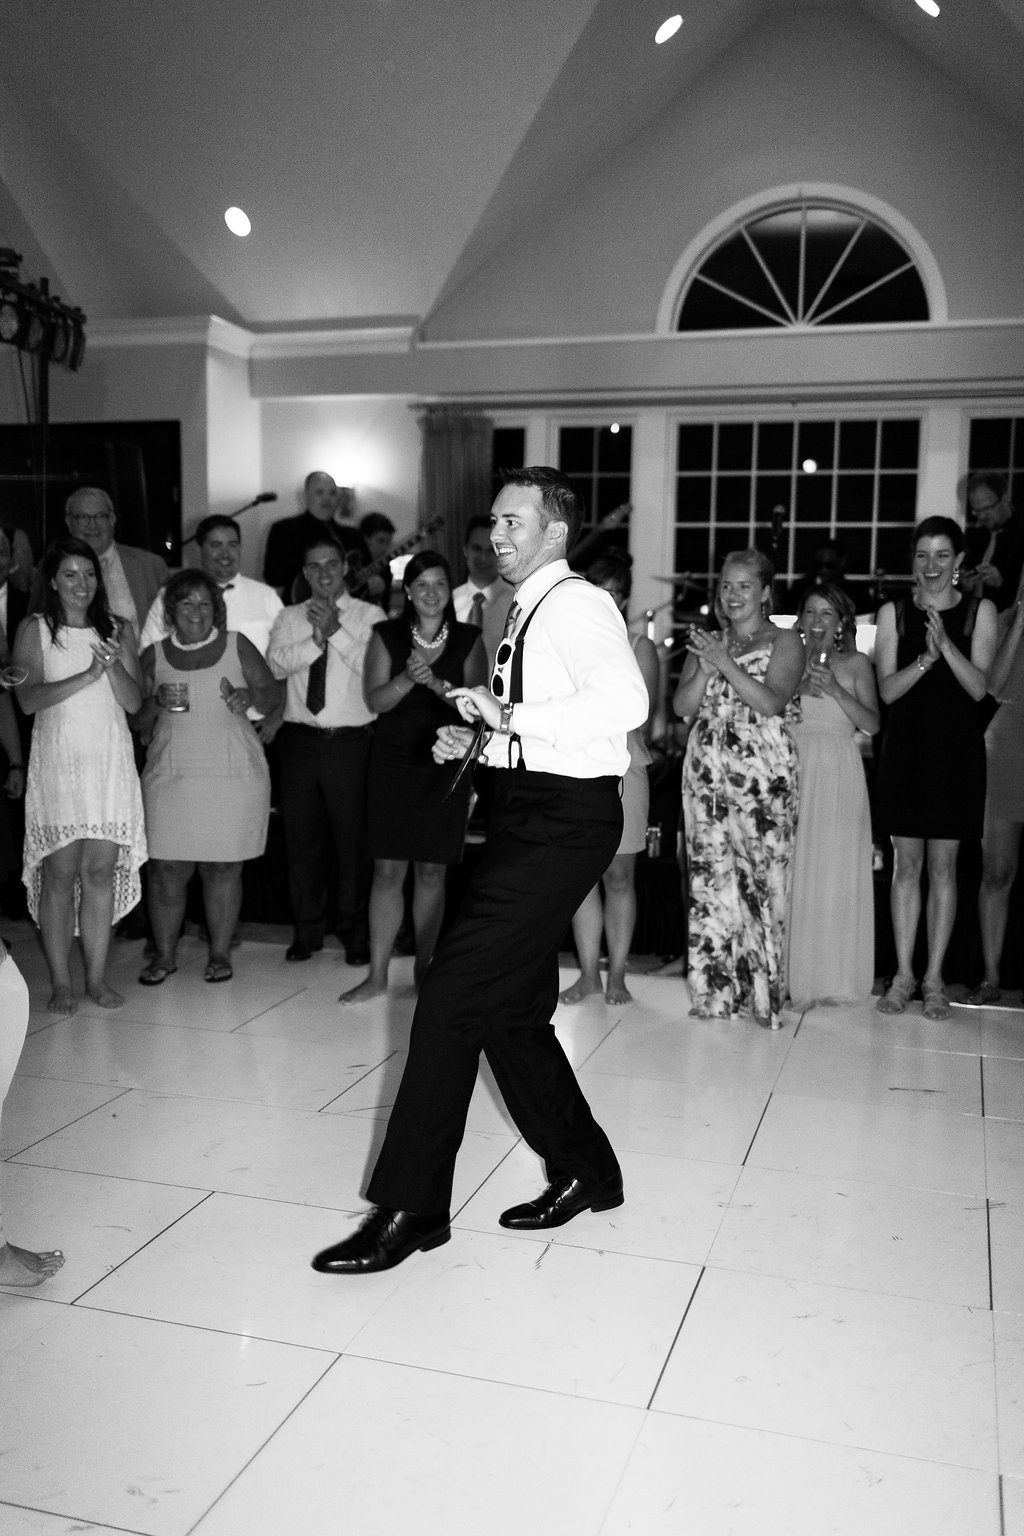 Irish Dancing at Wisconsin Wedding Reception